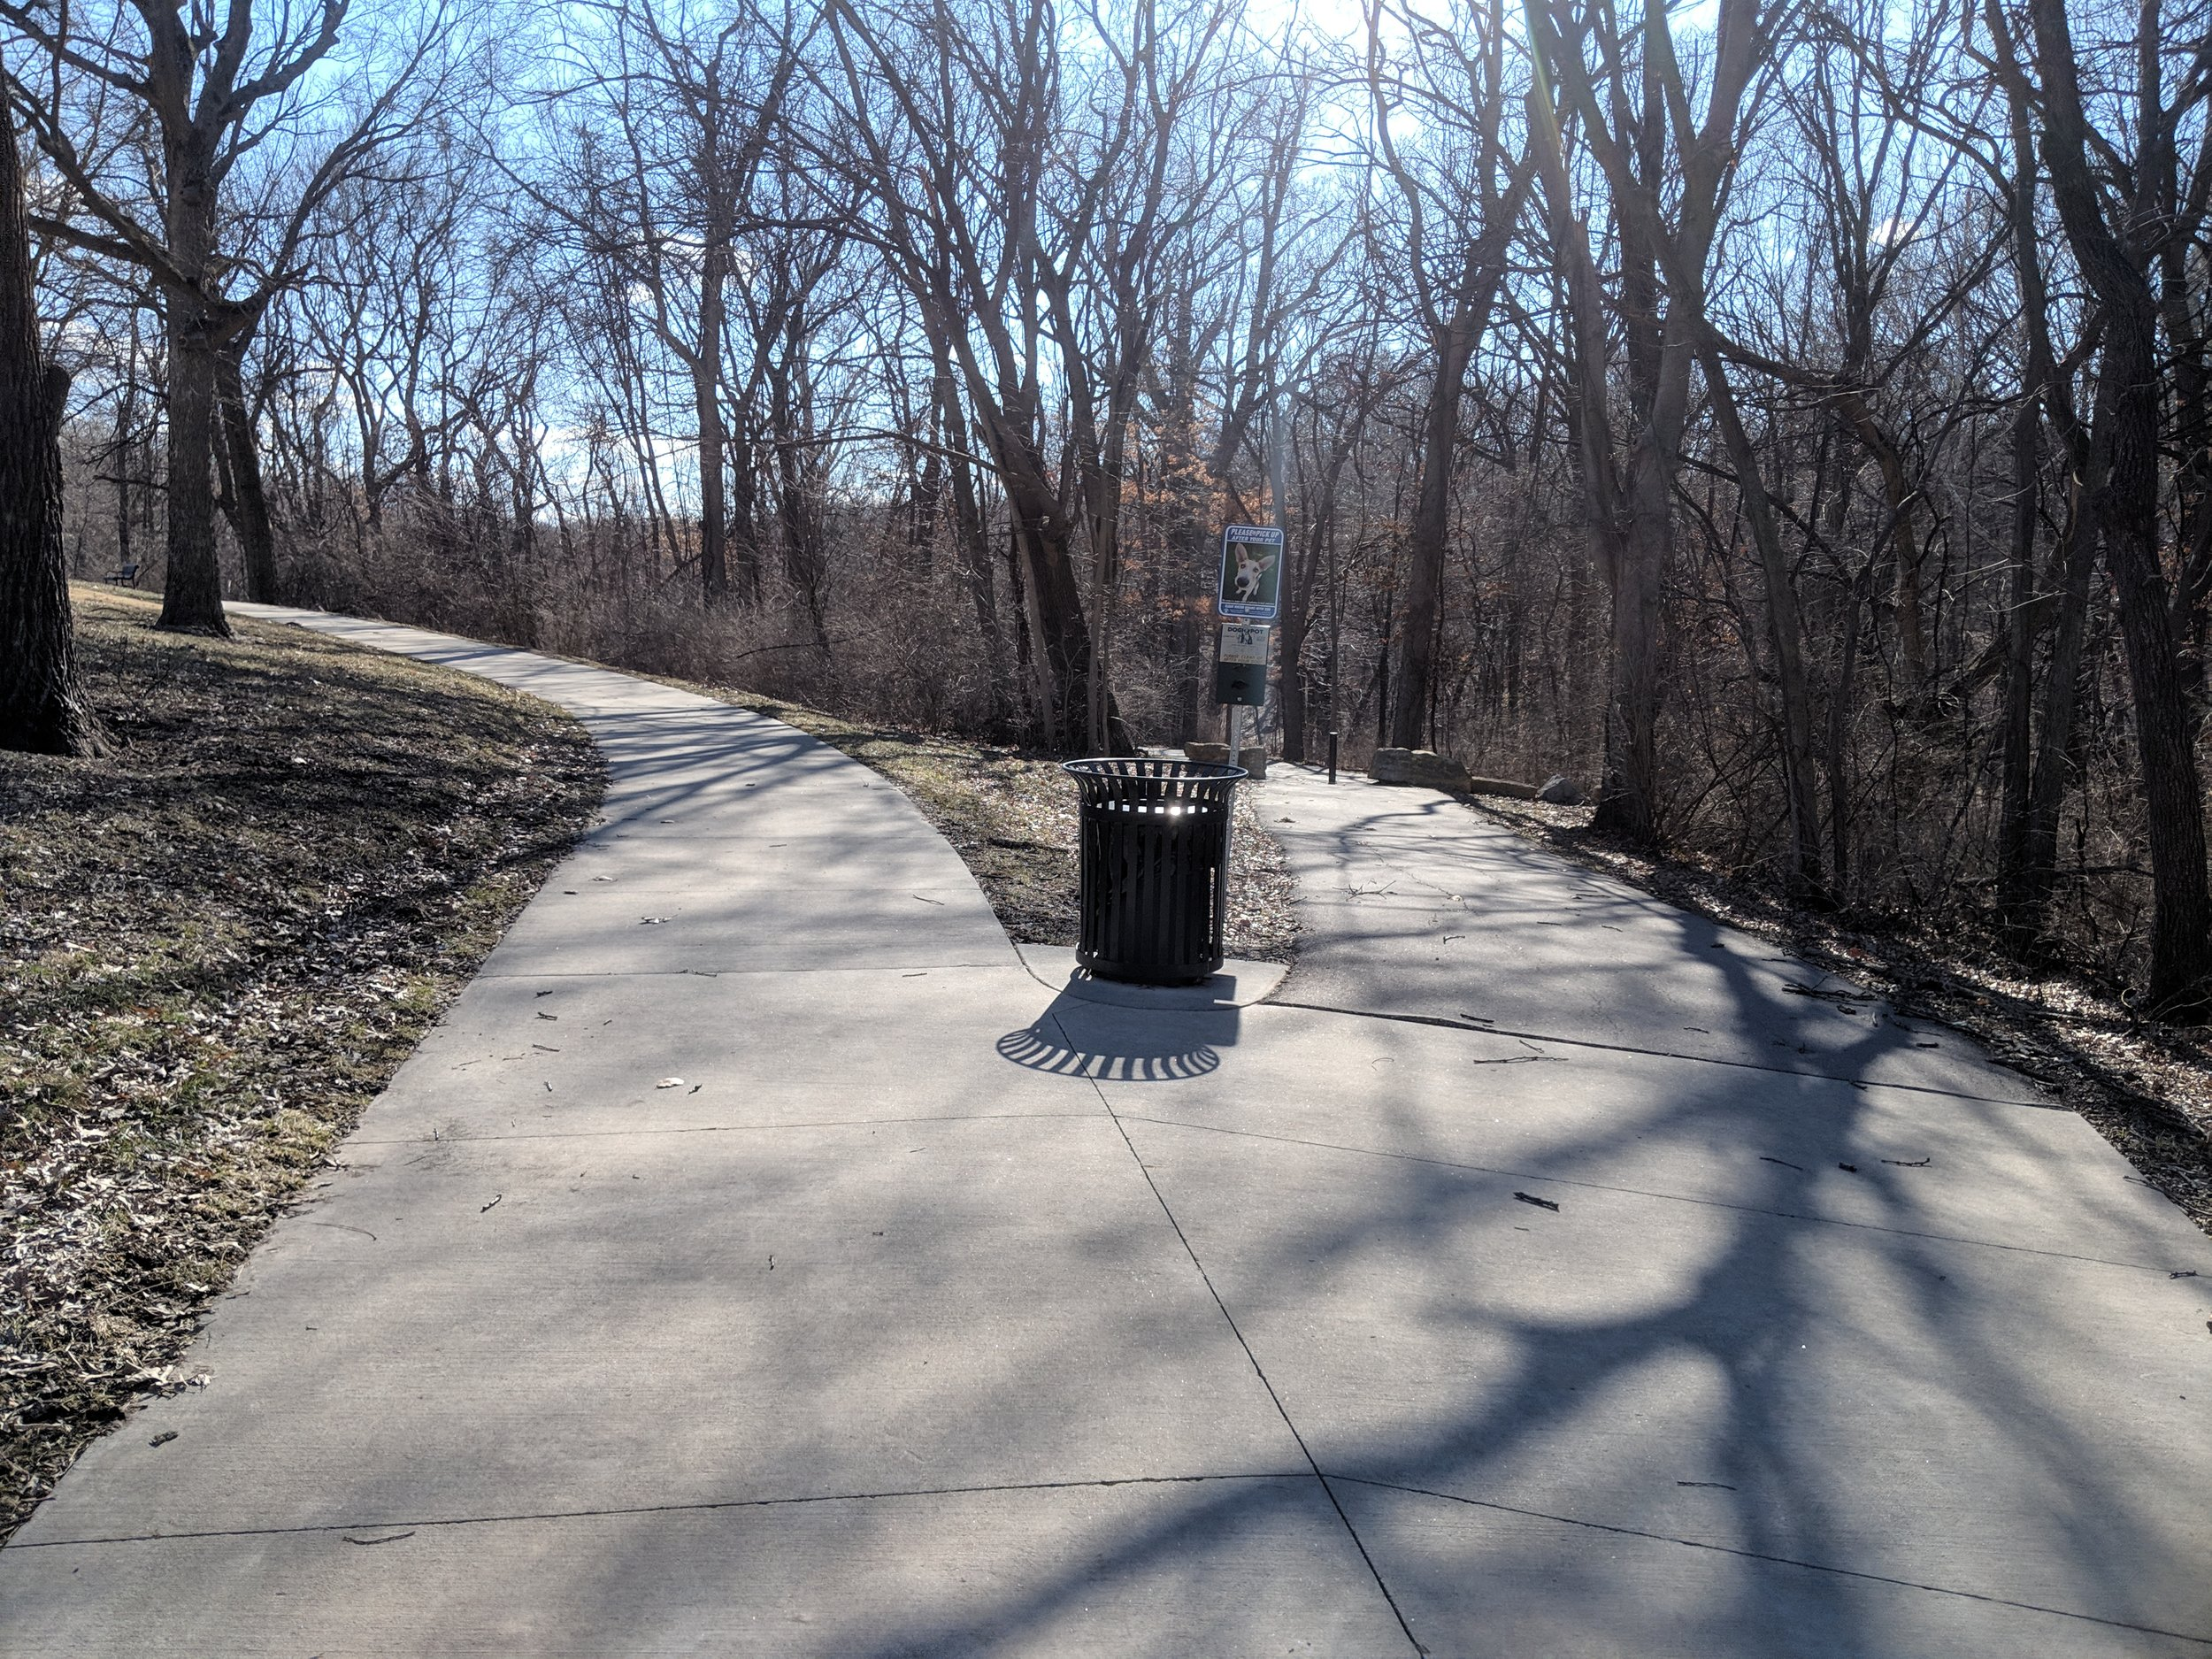 Build the Briarcliff Trails - Not only will I work to complete this fantastic neighborhood amenity, I will look for opportunities to tie the neighborhood trails into the bigger metro-wide trail system.